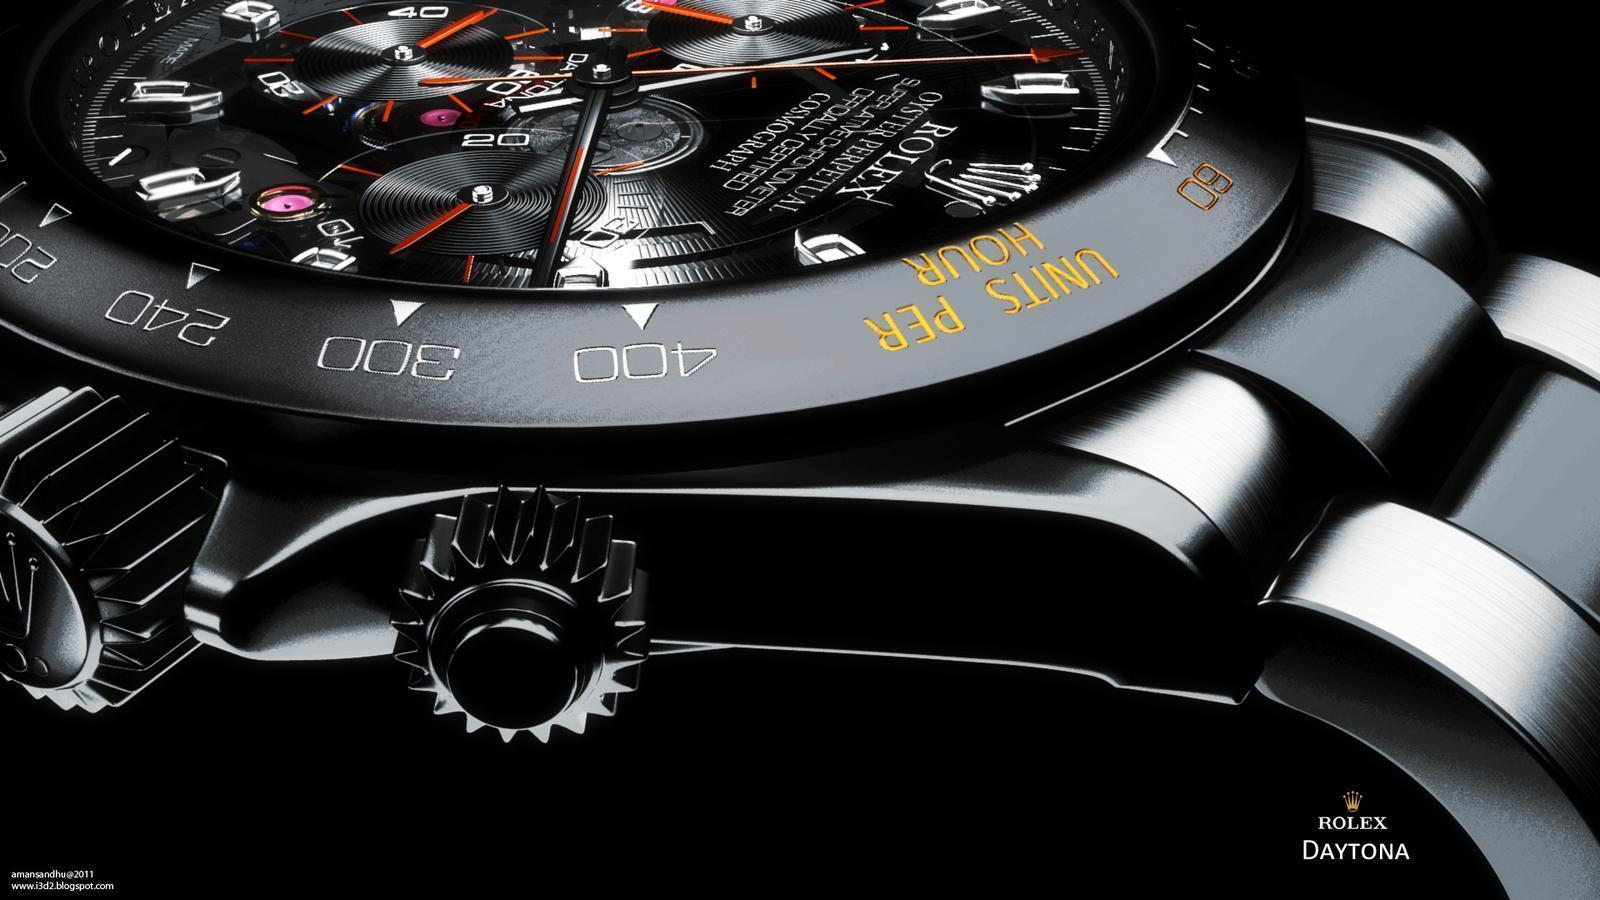 Latest Rolex Watch HD Wallpapers Free Download